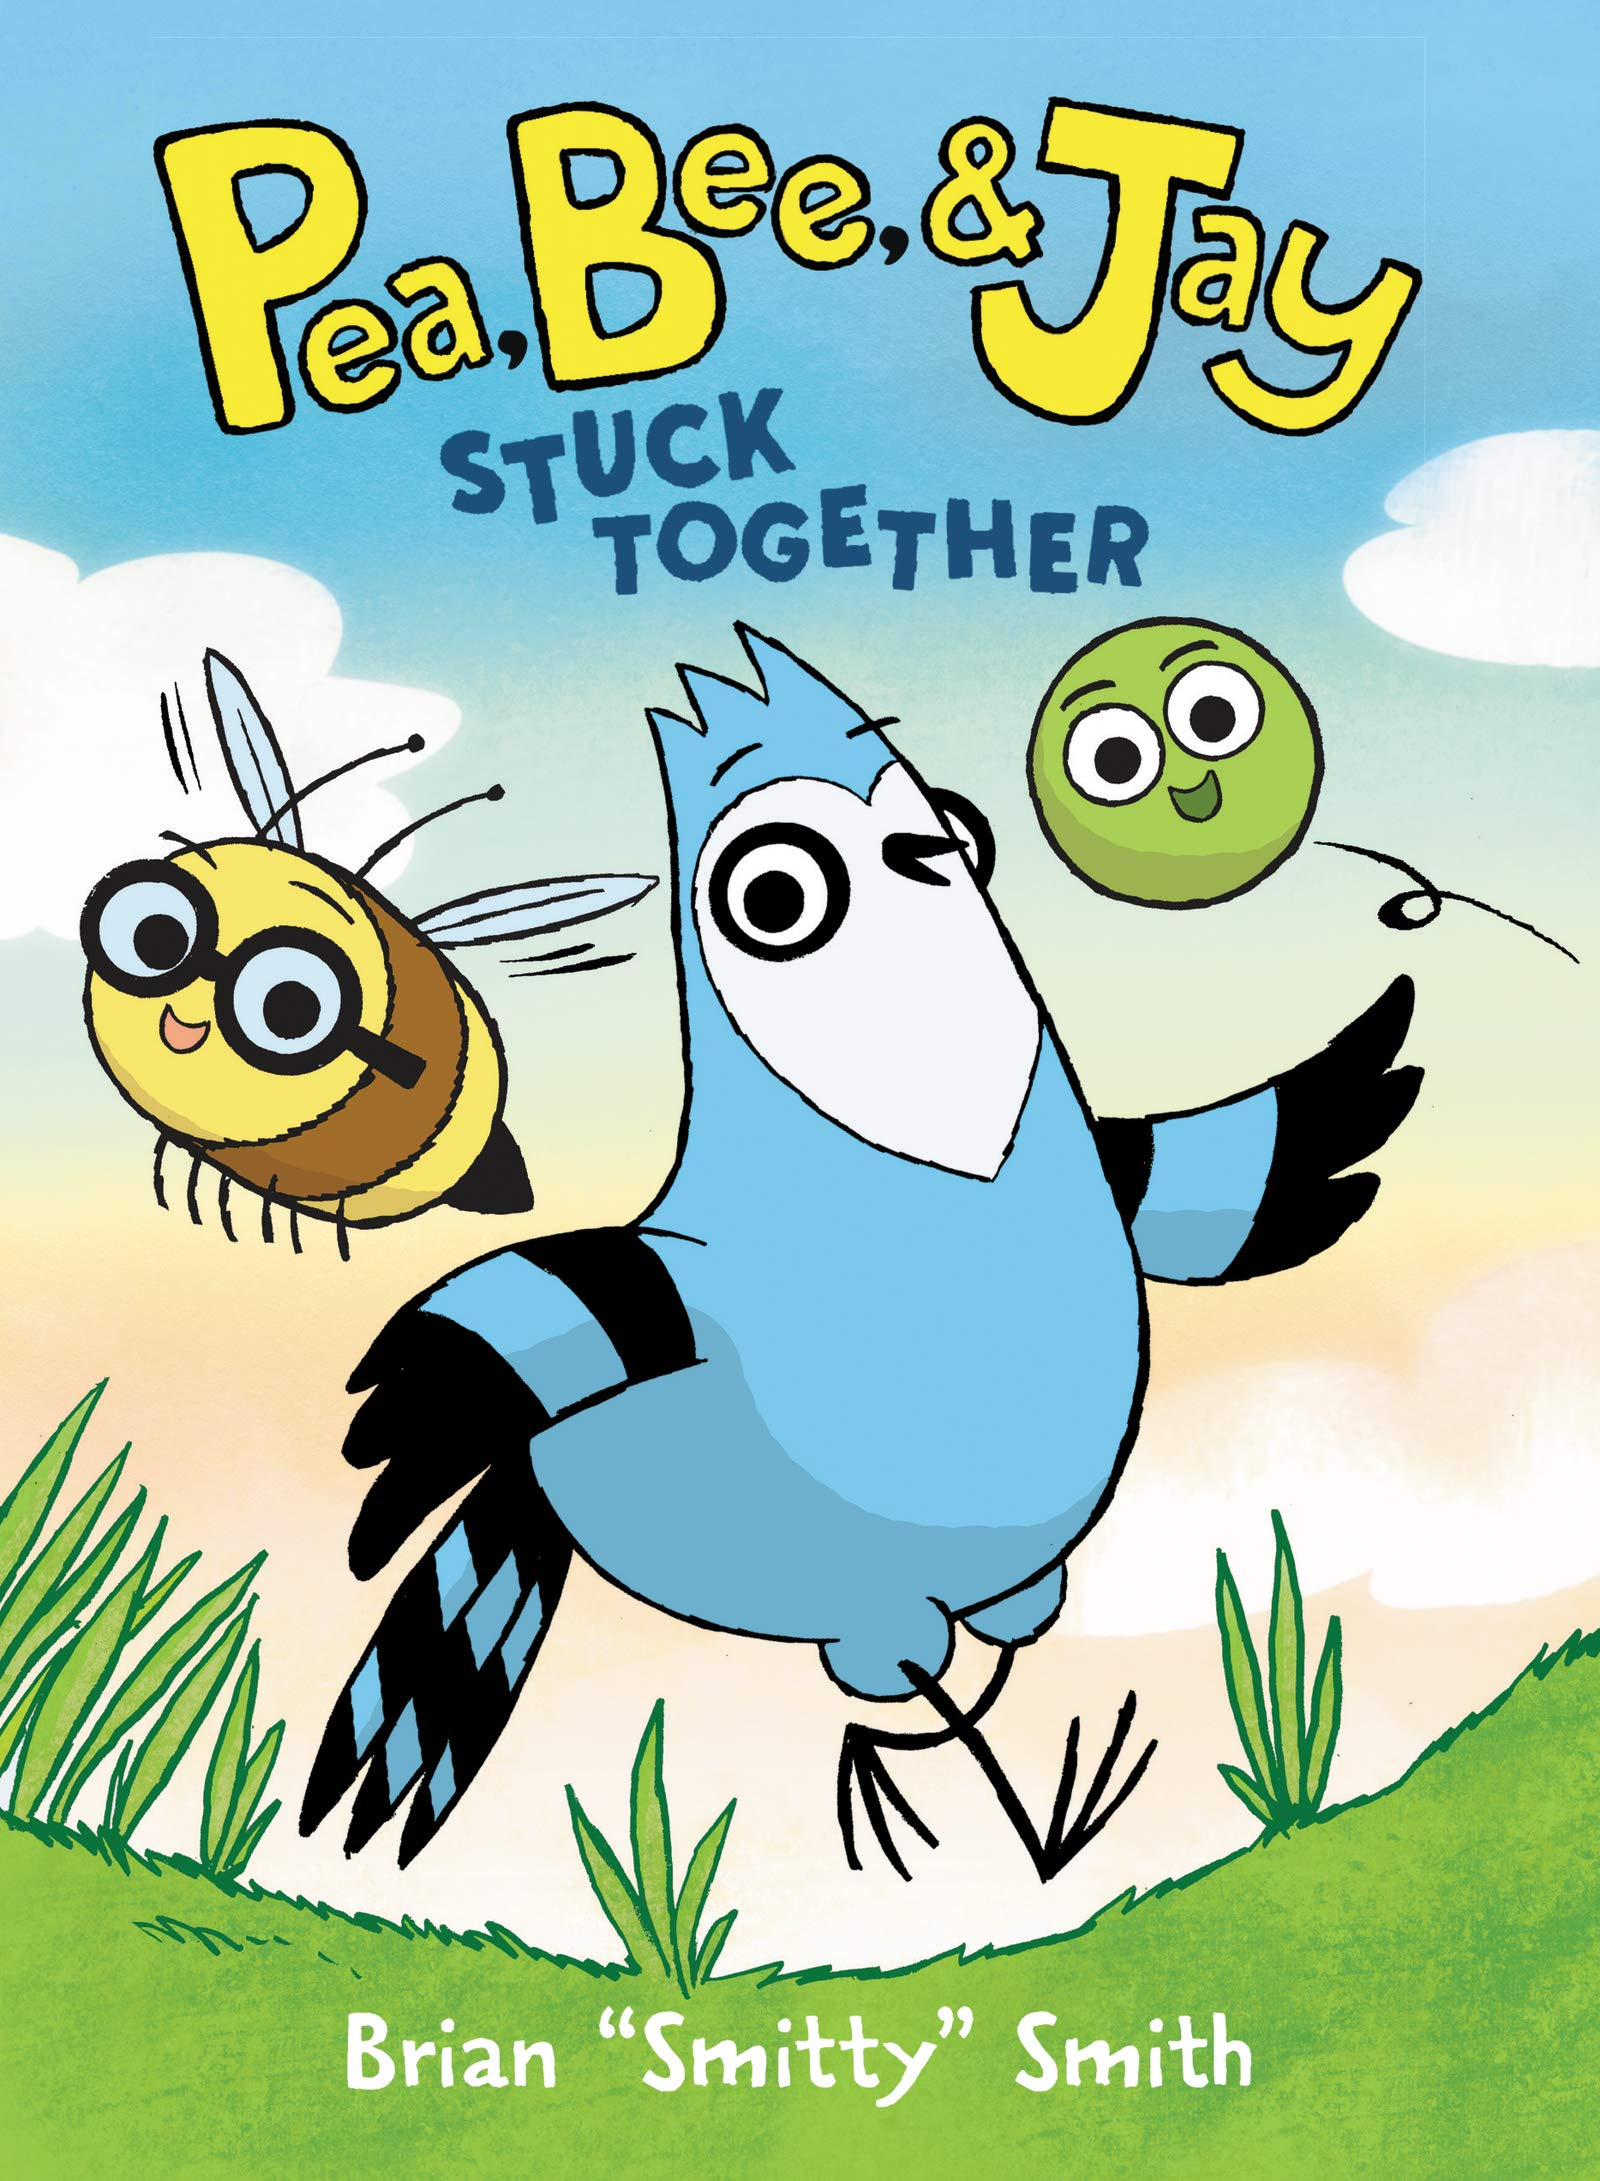 Pea, Bee, & Jay: Stuck Together